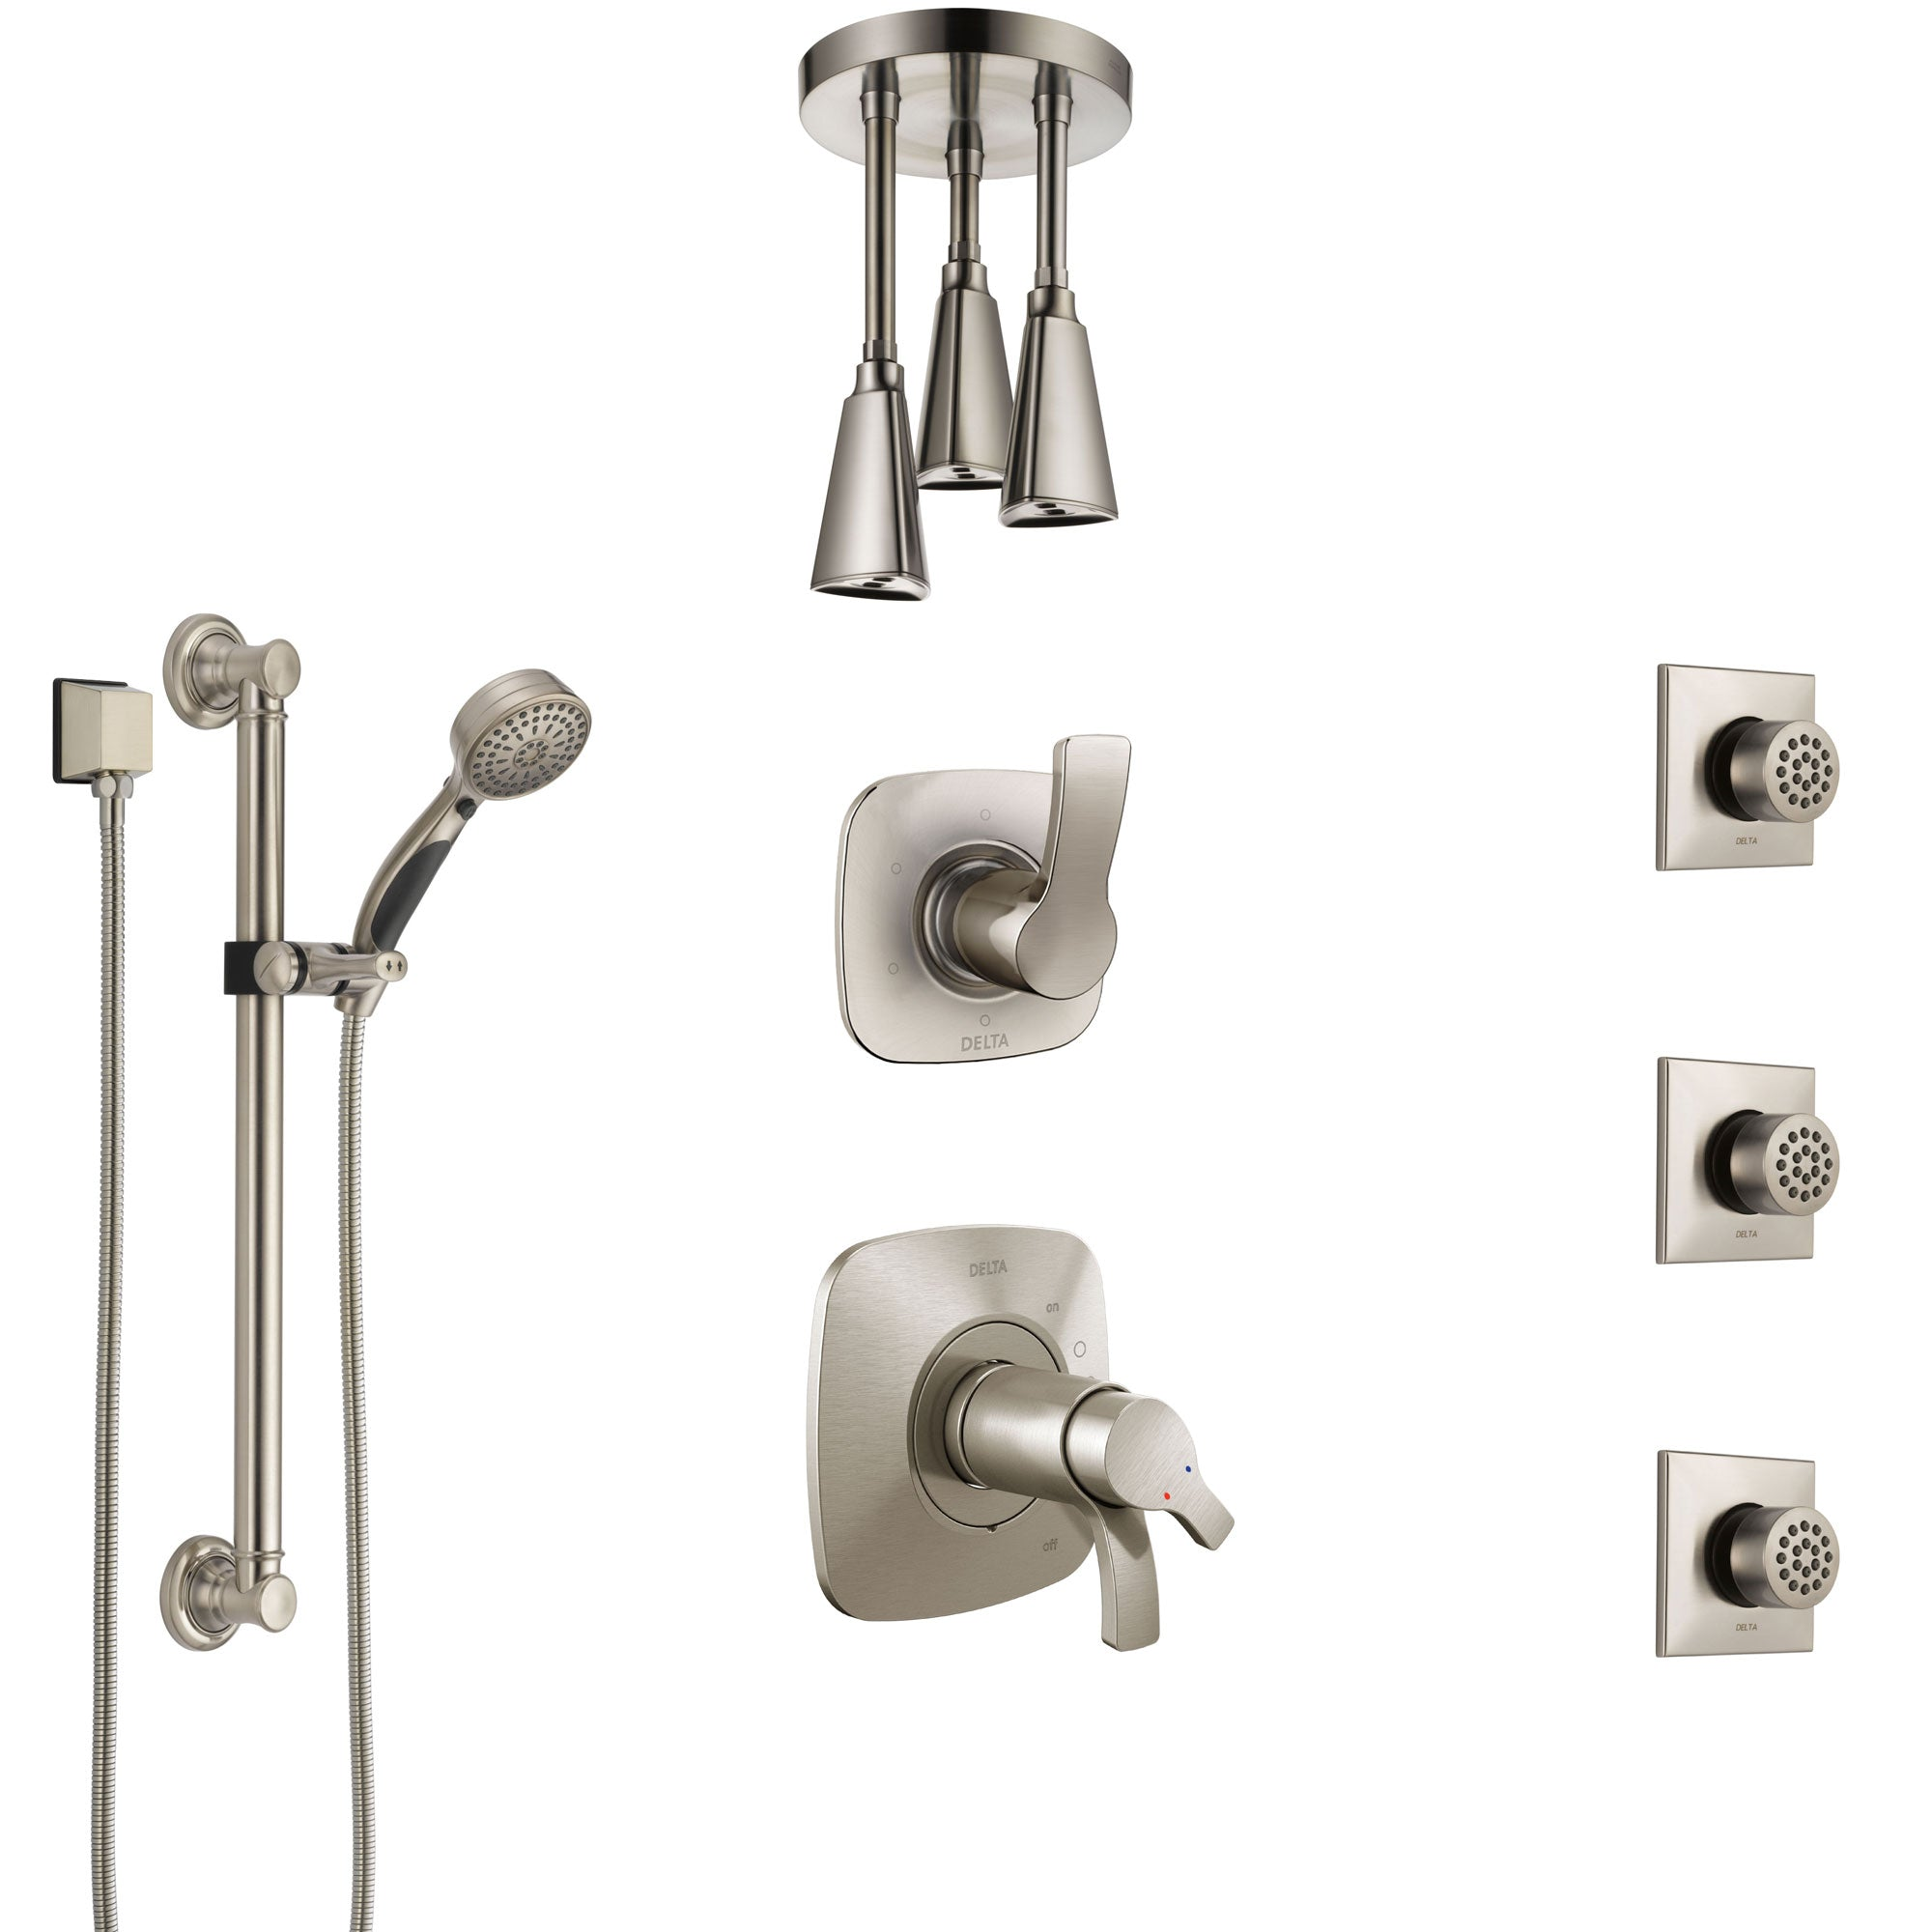 Delta Tesla Dual Thermostatic Control Stainless Steel Finish Shower System, Diverter, Ceiling Showerhead, 3 Body Jets, Grab Bar Hand Spray SS17T521SS2